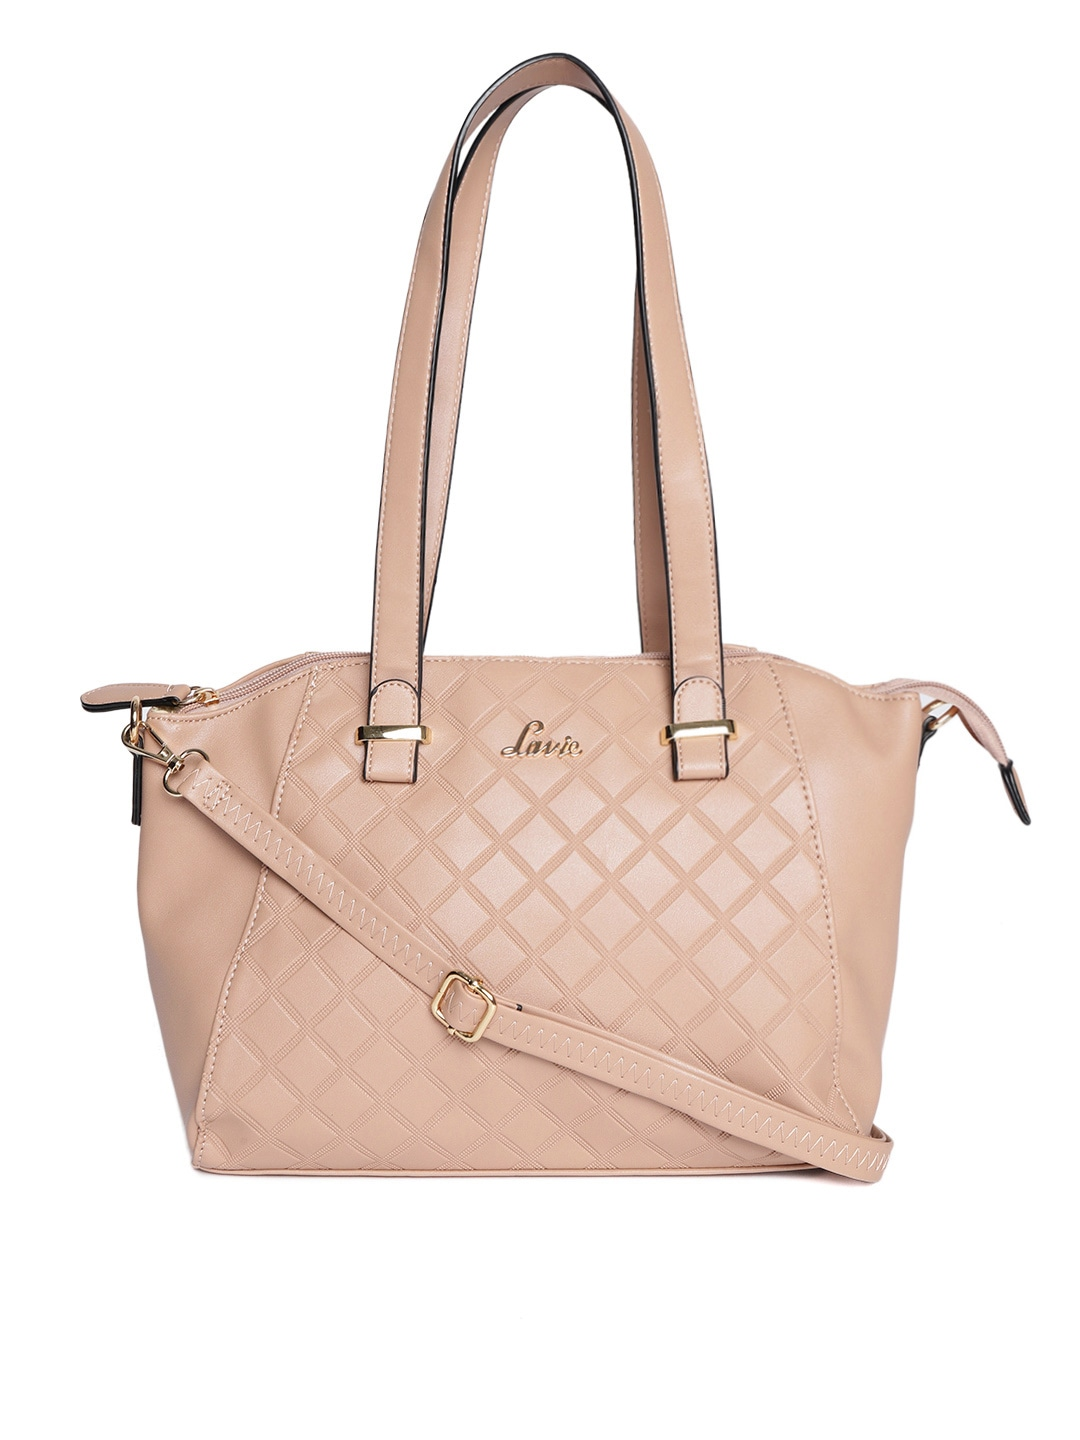 fdafedd108a Lavie Bags - Buy Lavie Bags Online in India